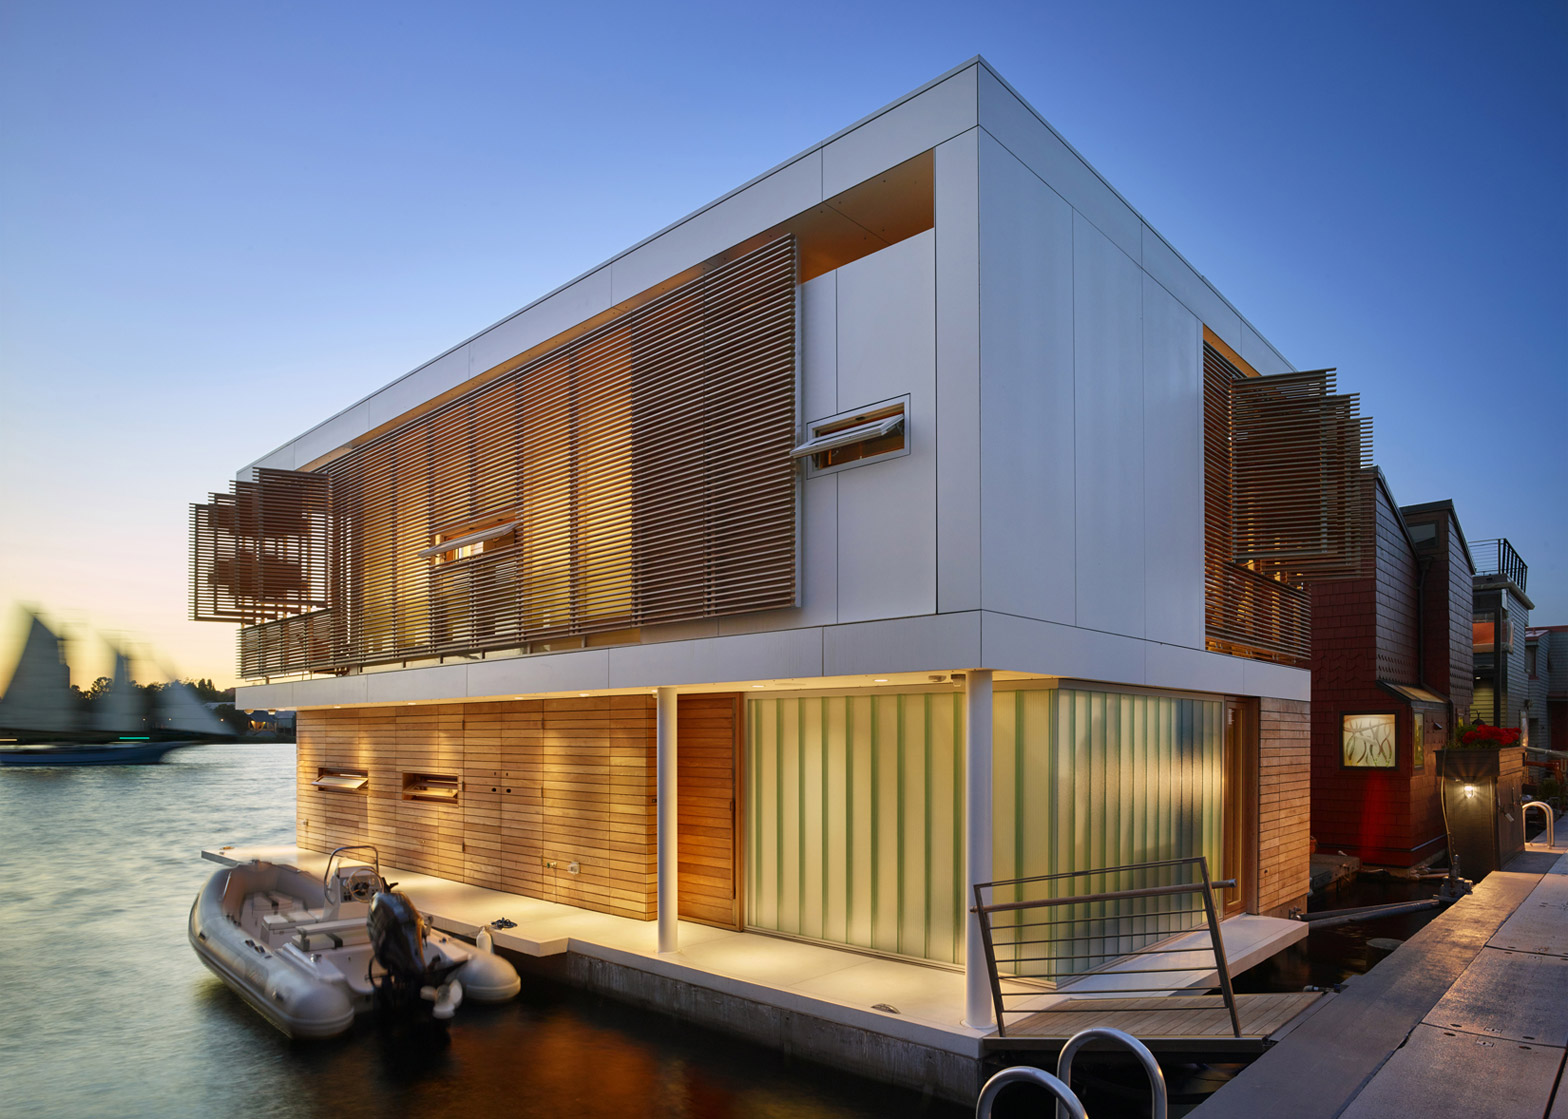 Wondrous Floating Home In Seattle Features Water Level Bedrooms Download Free Architecture Designs Scobabritishbridgeorg